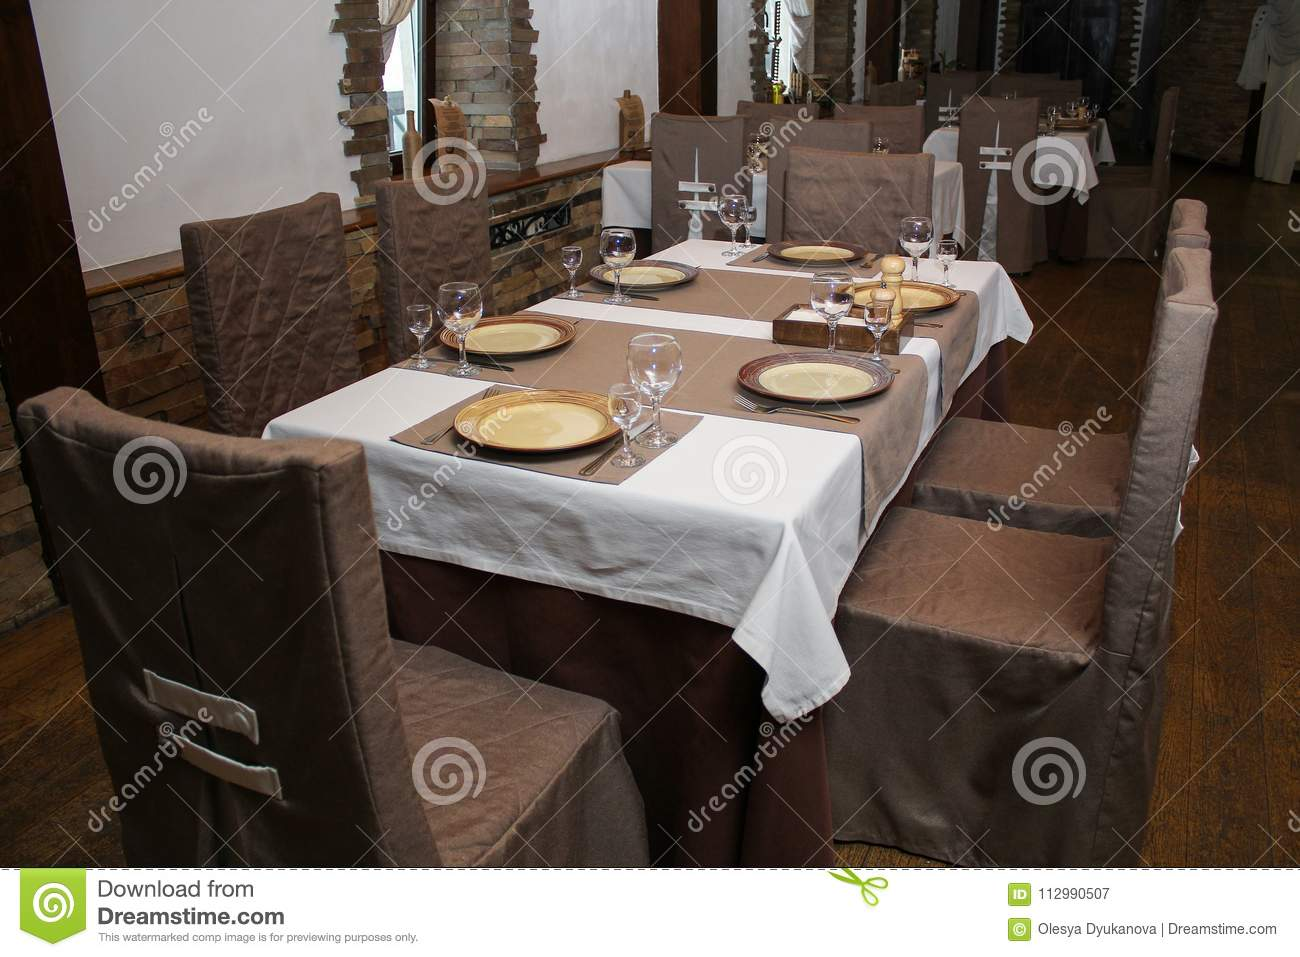 Interior of the restaurant is ready for the arrival of visitors